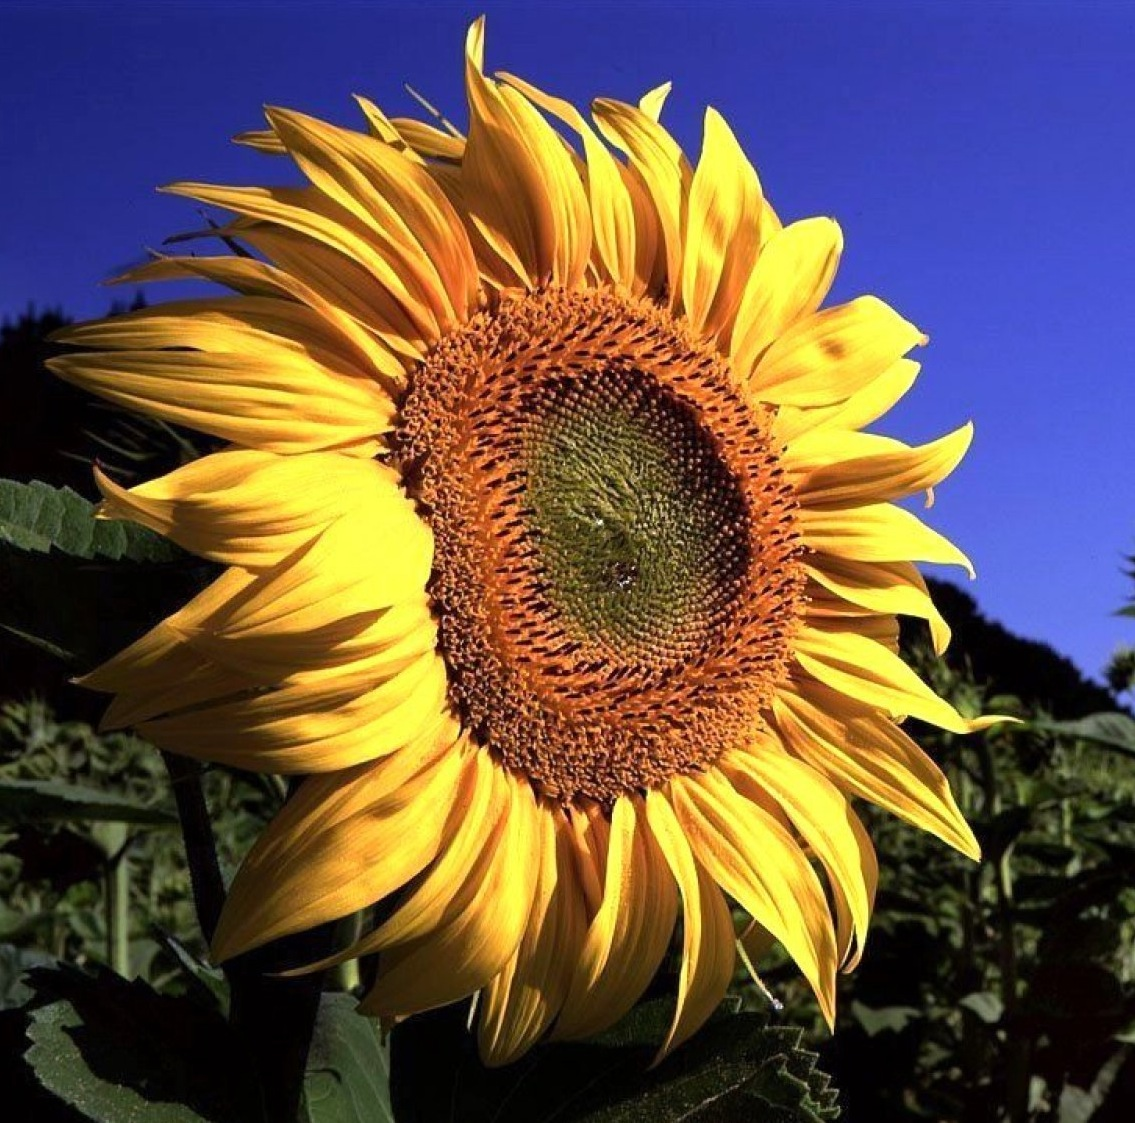 Sunflowers Seeds And More Eat The Weeds And Other Things Too